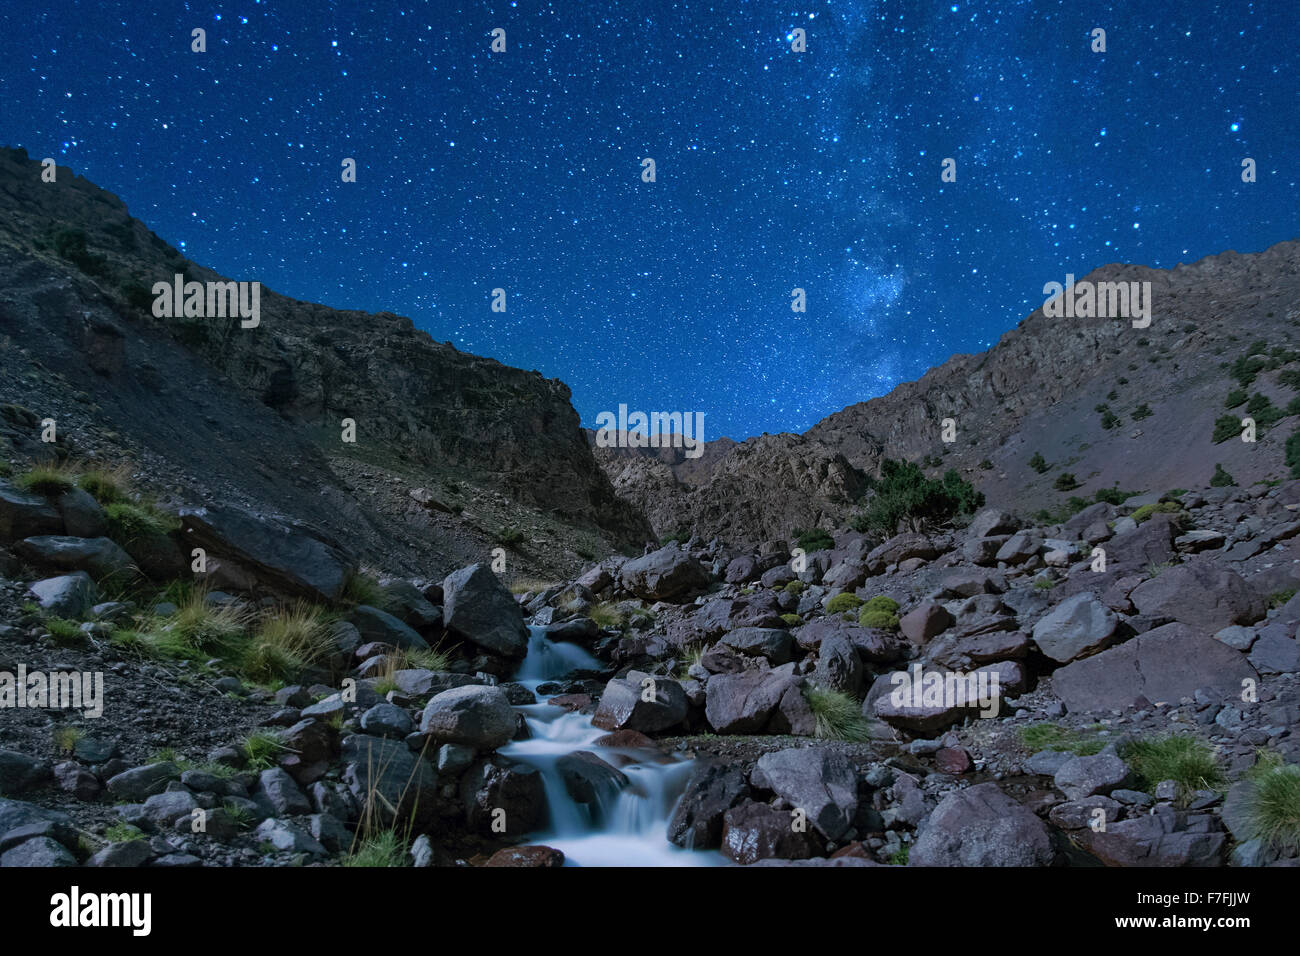 Moonlit landscape in the Tamsoult region of the Toubkal National Park in the Atlas mountains in Morocco. - Stock Image